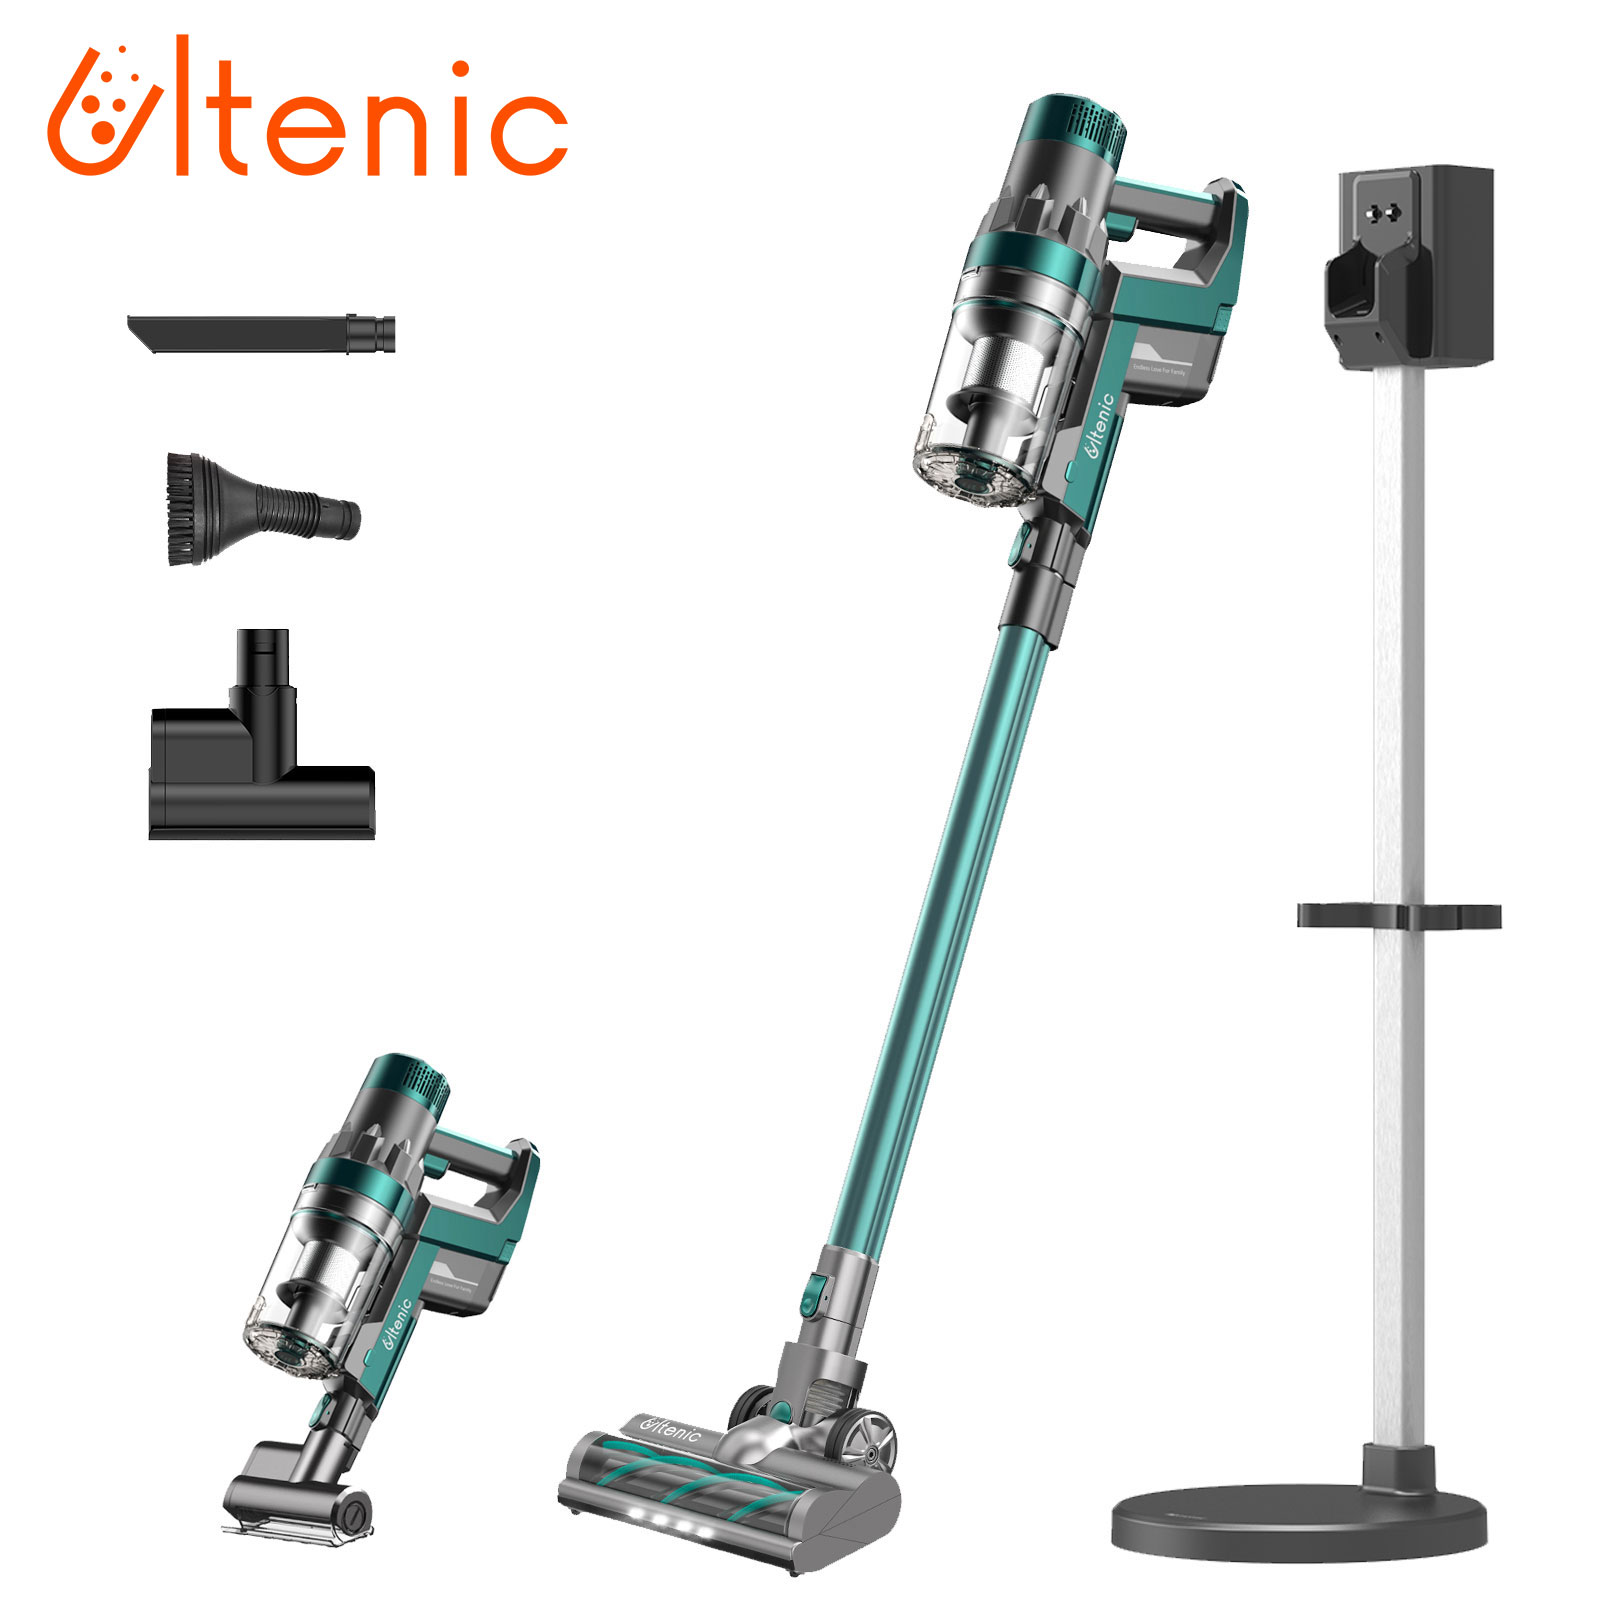 Ultenic U11 Cordless Vacuum Cleaner,4 in 1 Strong function, 25kPa,Removable Battery, LED Touch Screen,Charging with Storage rack